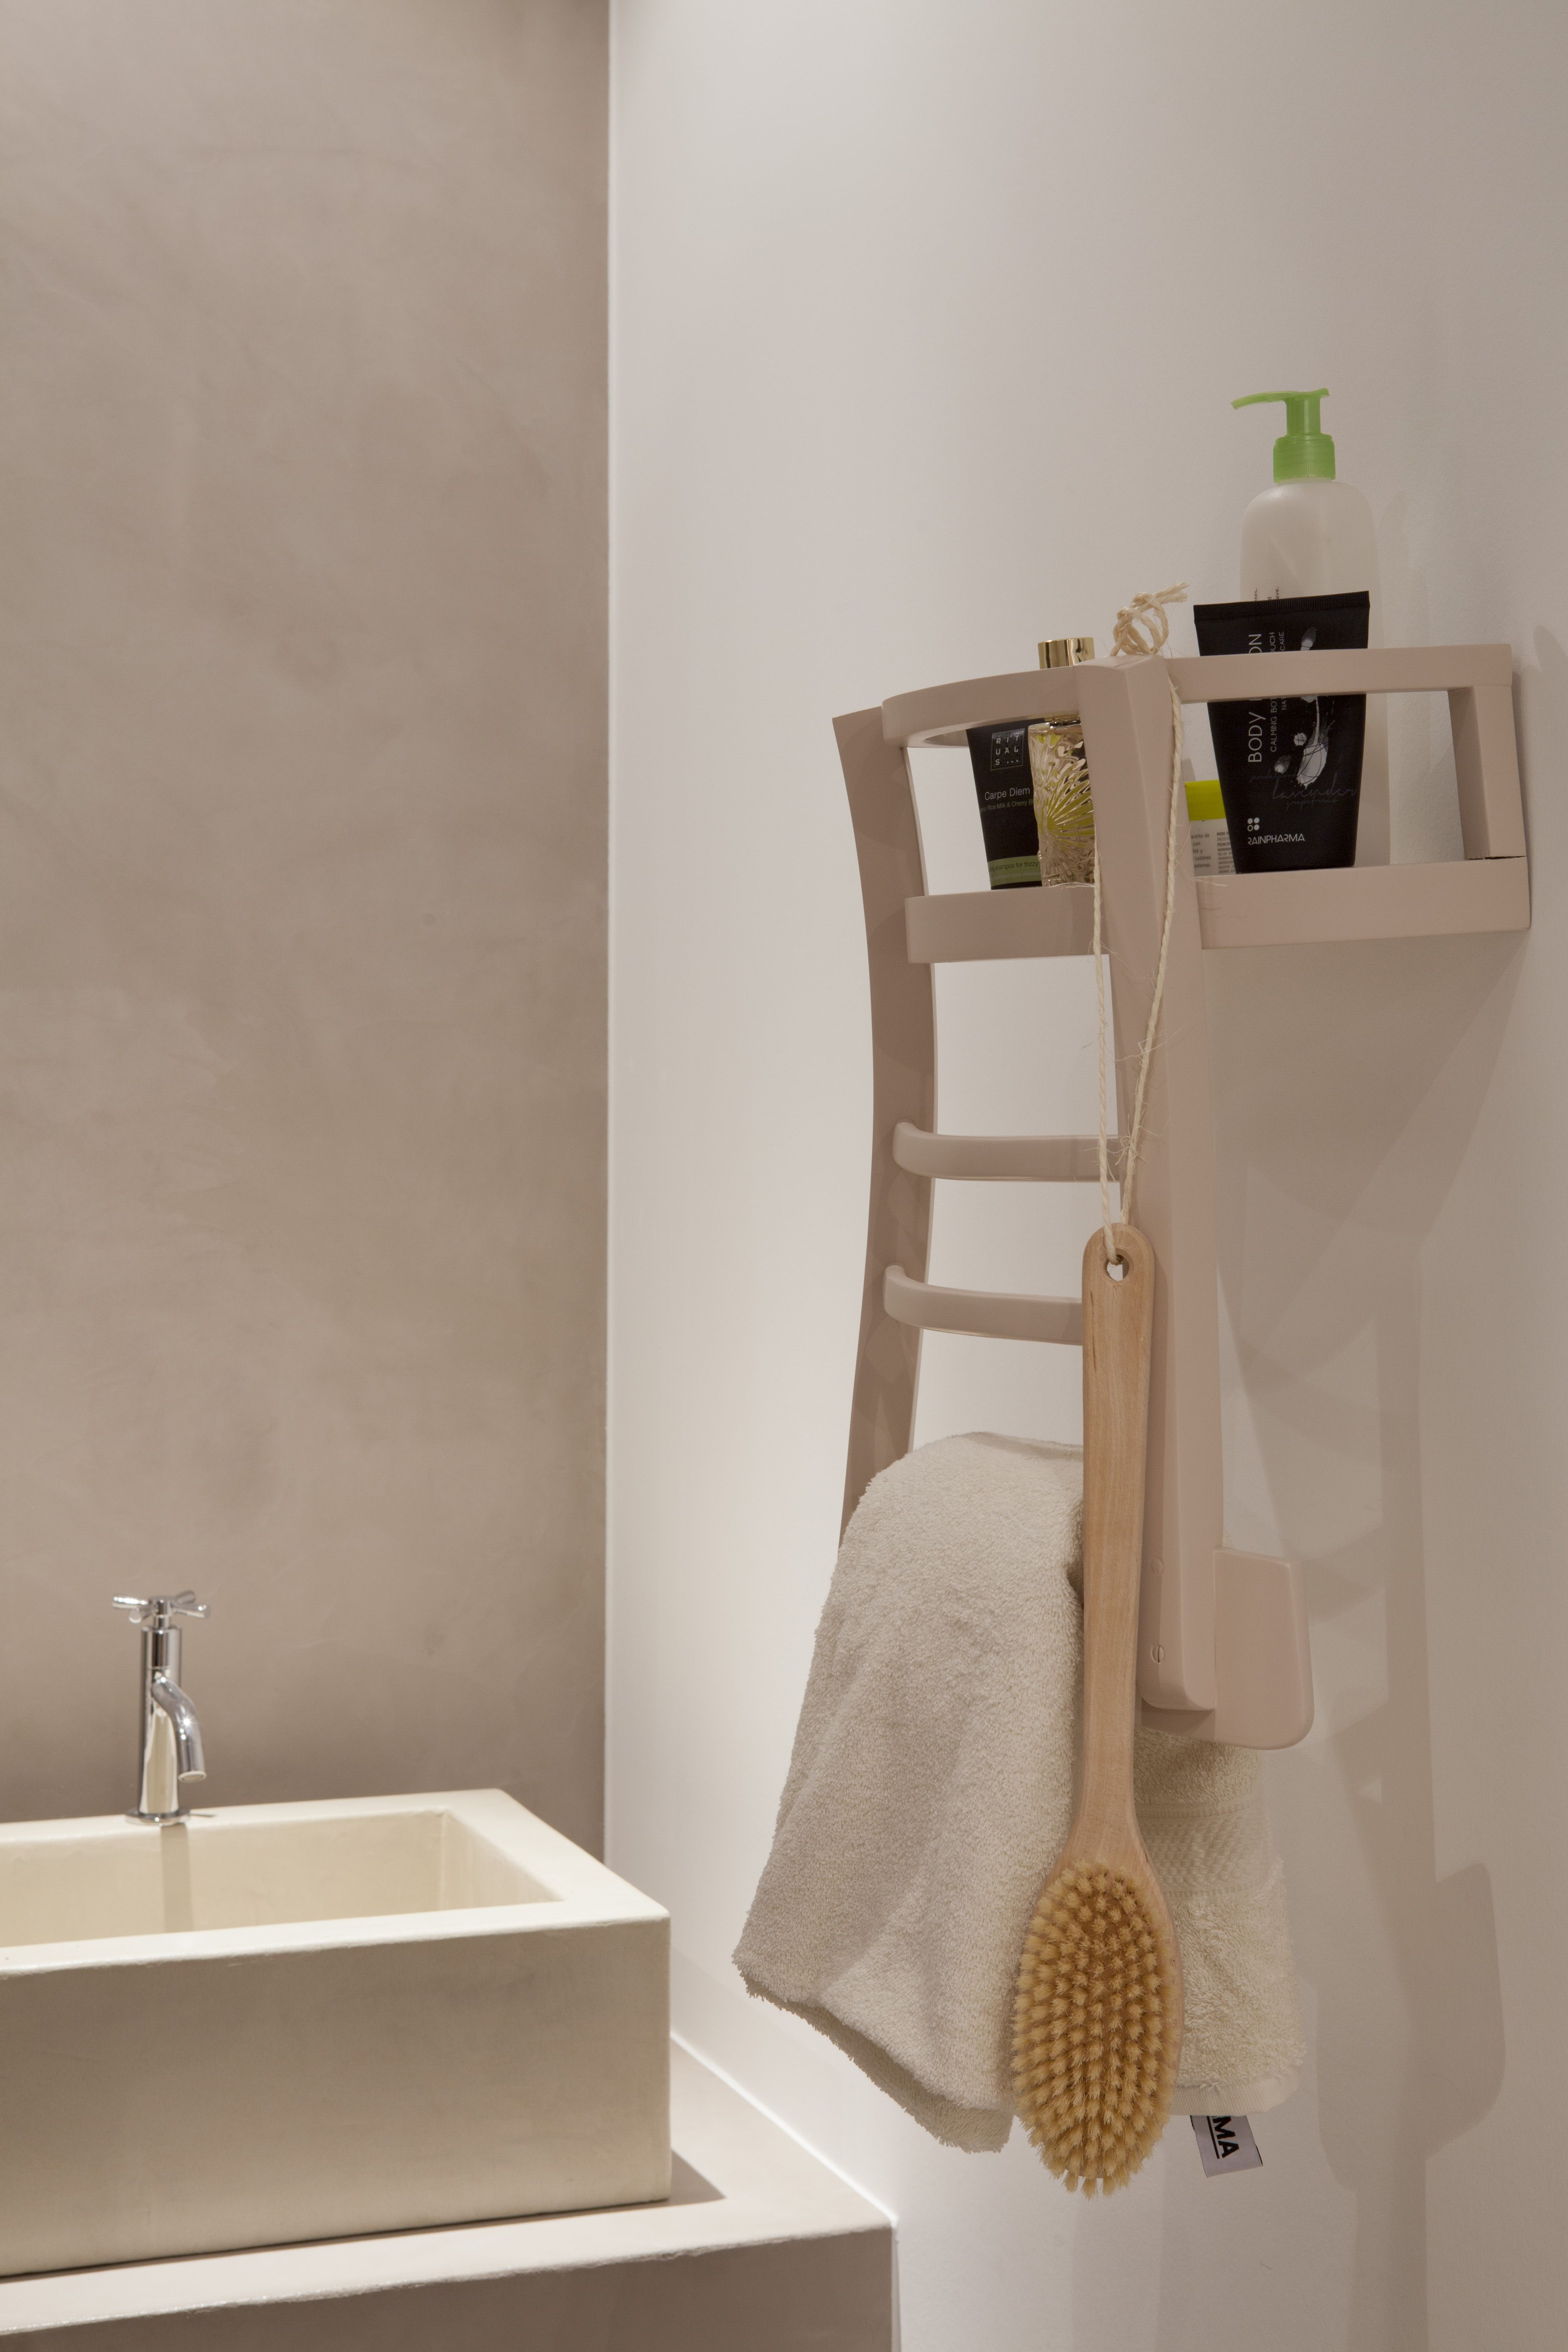 Upcycled old chair used as a towel rack! Conveniently ...